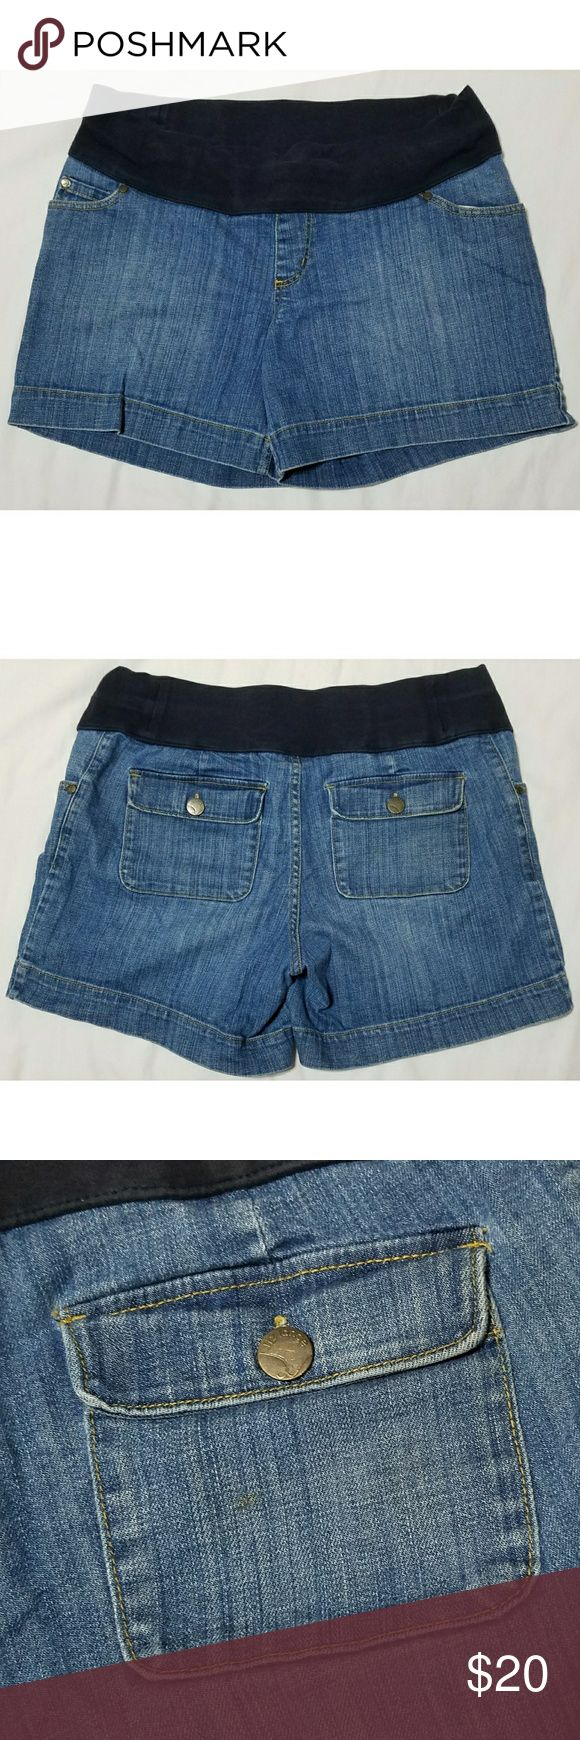 """Liz Lange for Target Maternity Jean Shorts M Women's Liz Lange for Target maternity jean shorts, size medium. There is one small stain on the back right pocket that did not come out in the wash. They are in otherwise excellent condition with no other stains, tears, rips or holes that I can see.   Shell: 99% cotton/1% spandex Knit: 95% cotton/5% spandex  Waist: 35"""" unstretched  Inseam: 5.5"""" Outseam: 14.5"""" Front rise: 10"""" Back rise: 15.5"""" Hips: 42"""" Leg opening: 25""""  All items come from a smoke…"""